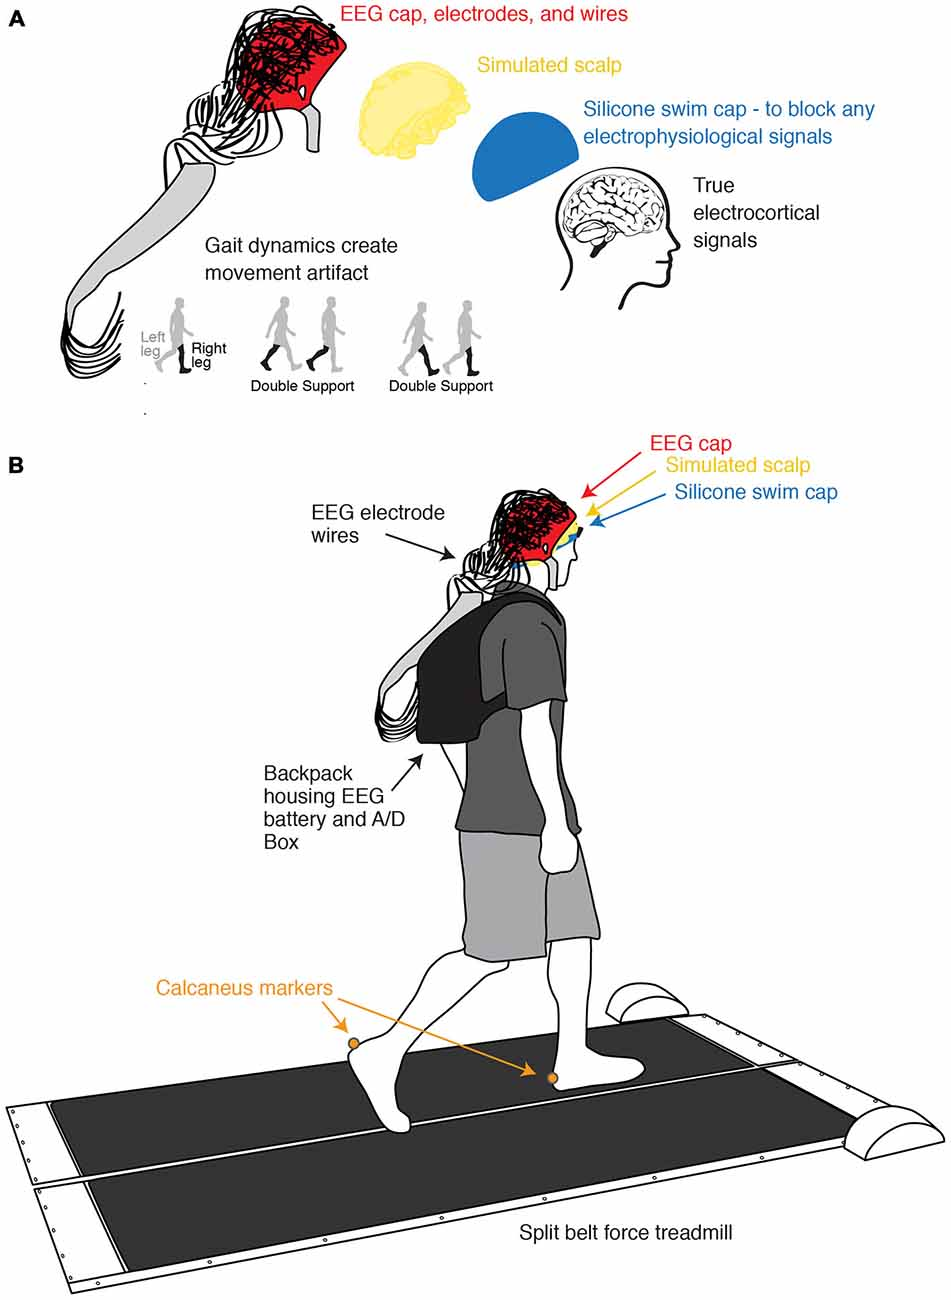 Frontiers | Independent Component Analysis of Gait-Related Movement ...